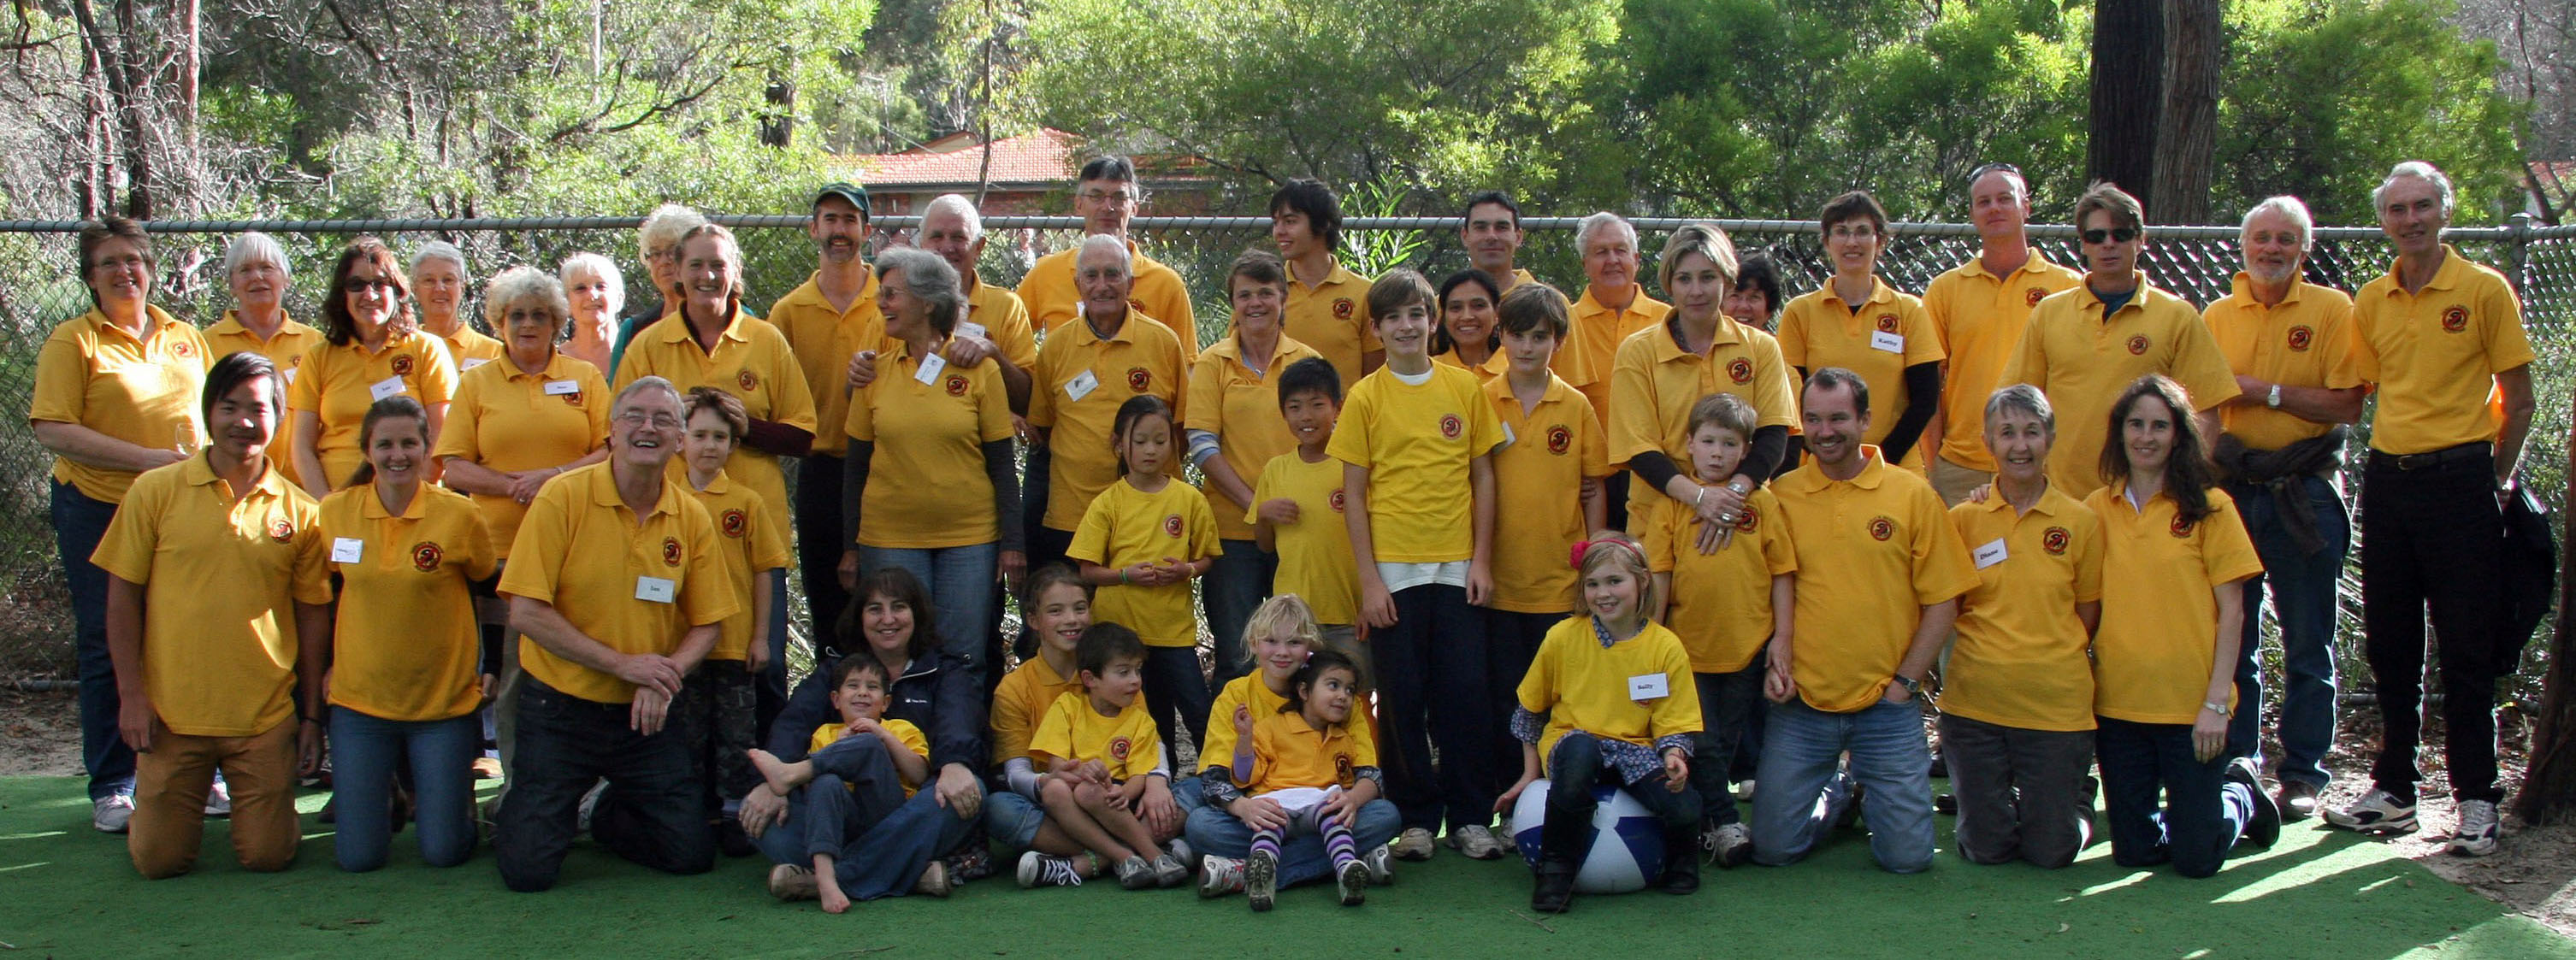 2014 RoleyBushcare Group Photo